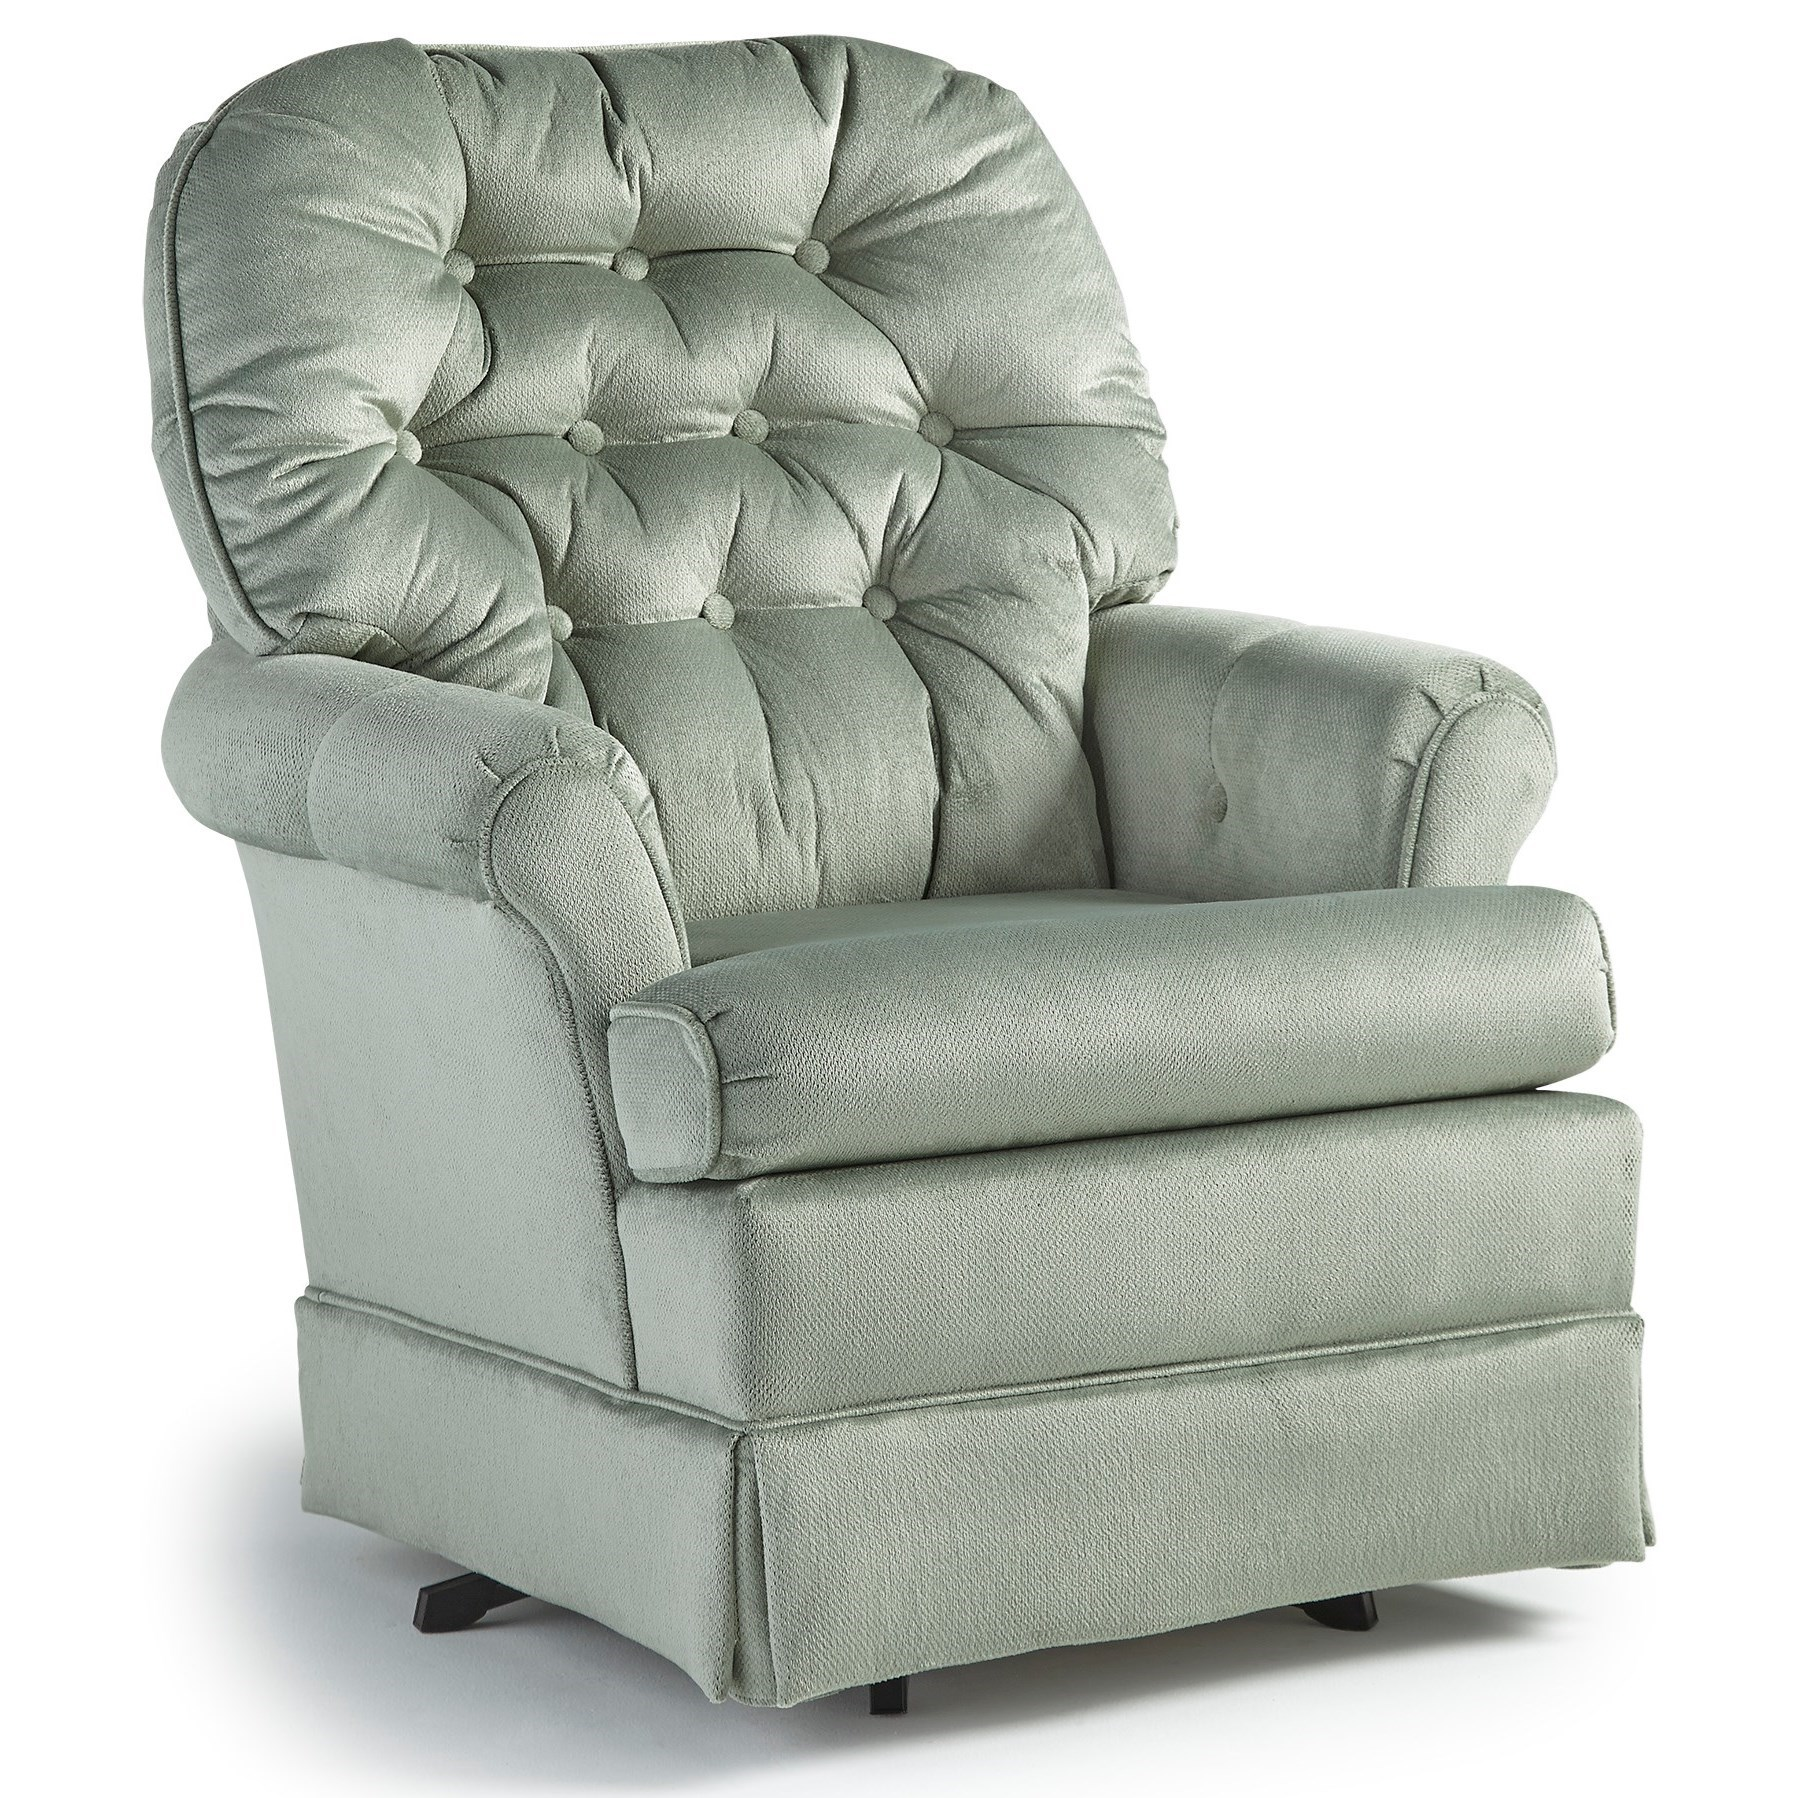 Best Home Furnishings Chairs Swivel Glide Marla Swivel Rocker